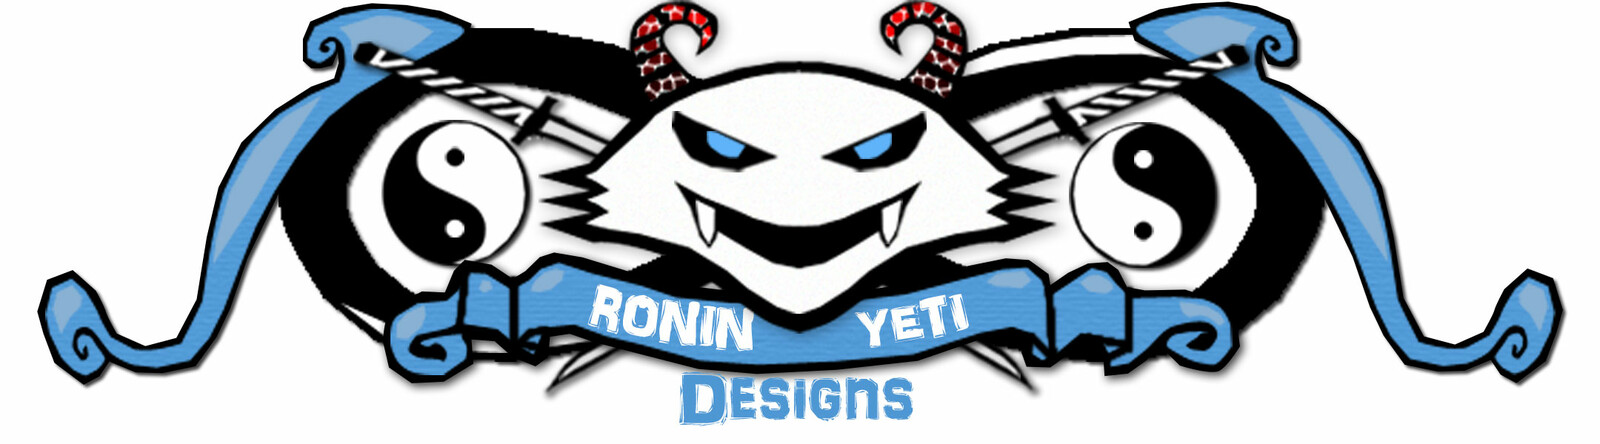 The final version of RYD logo #1